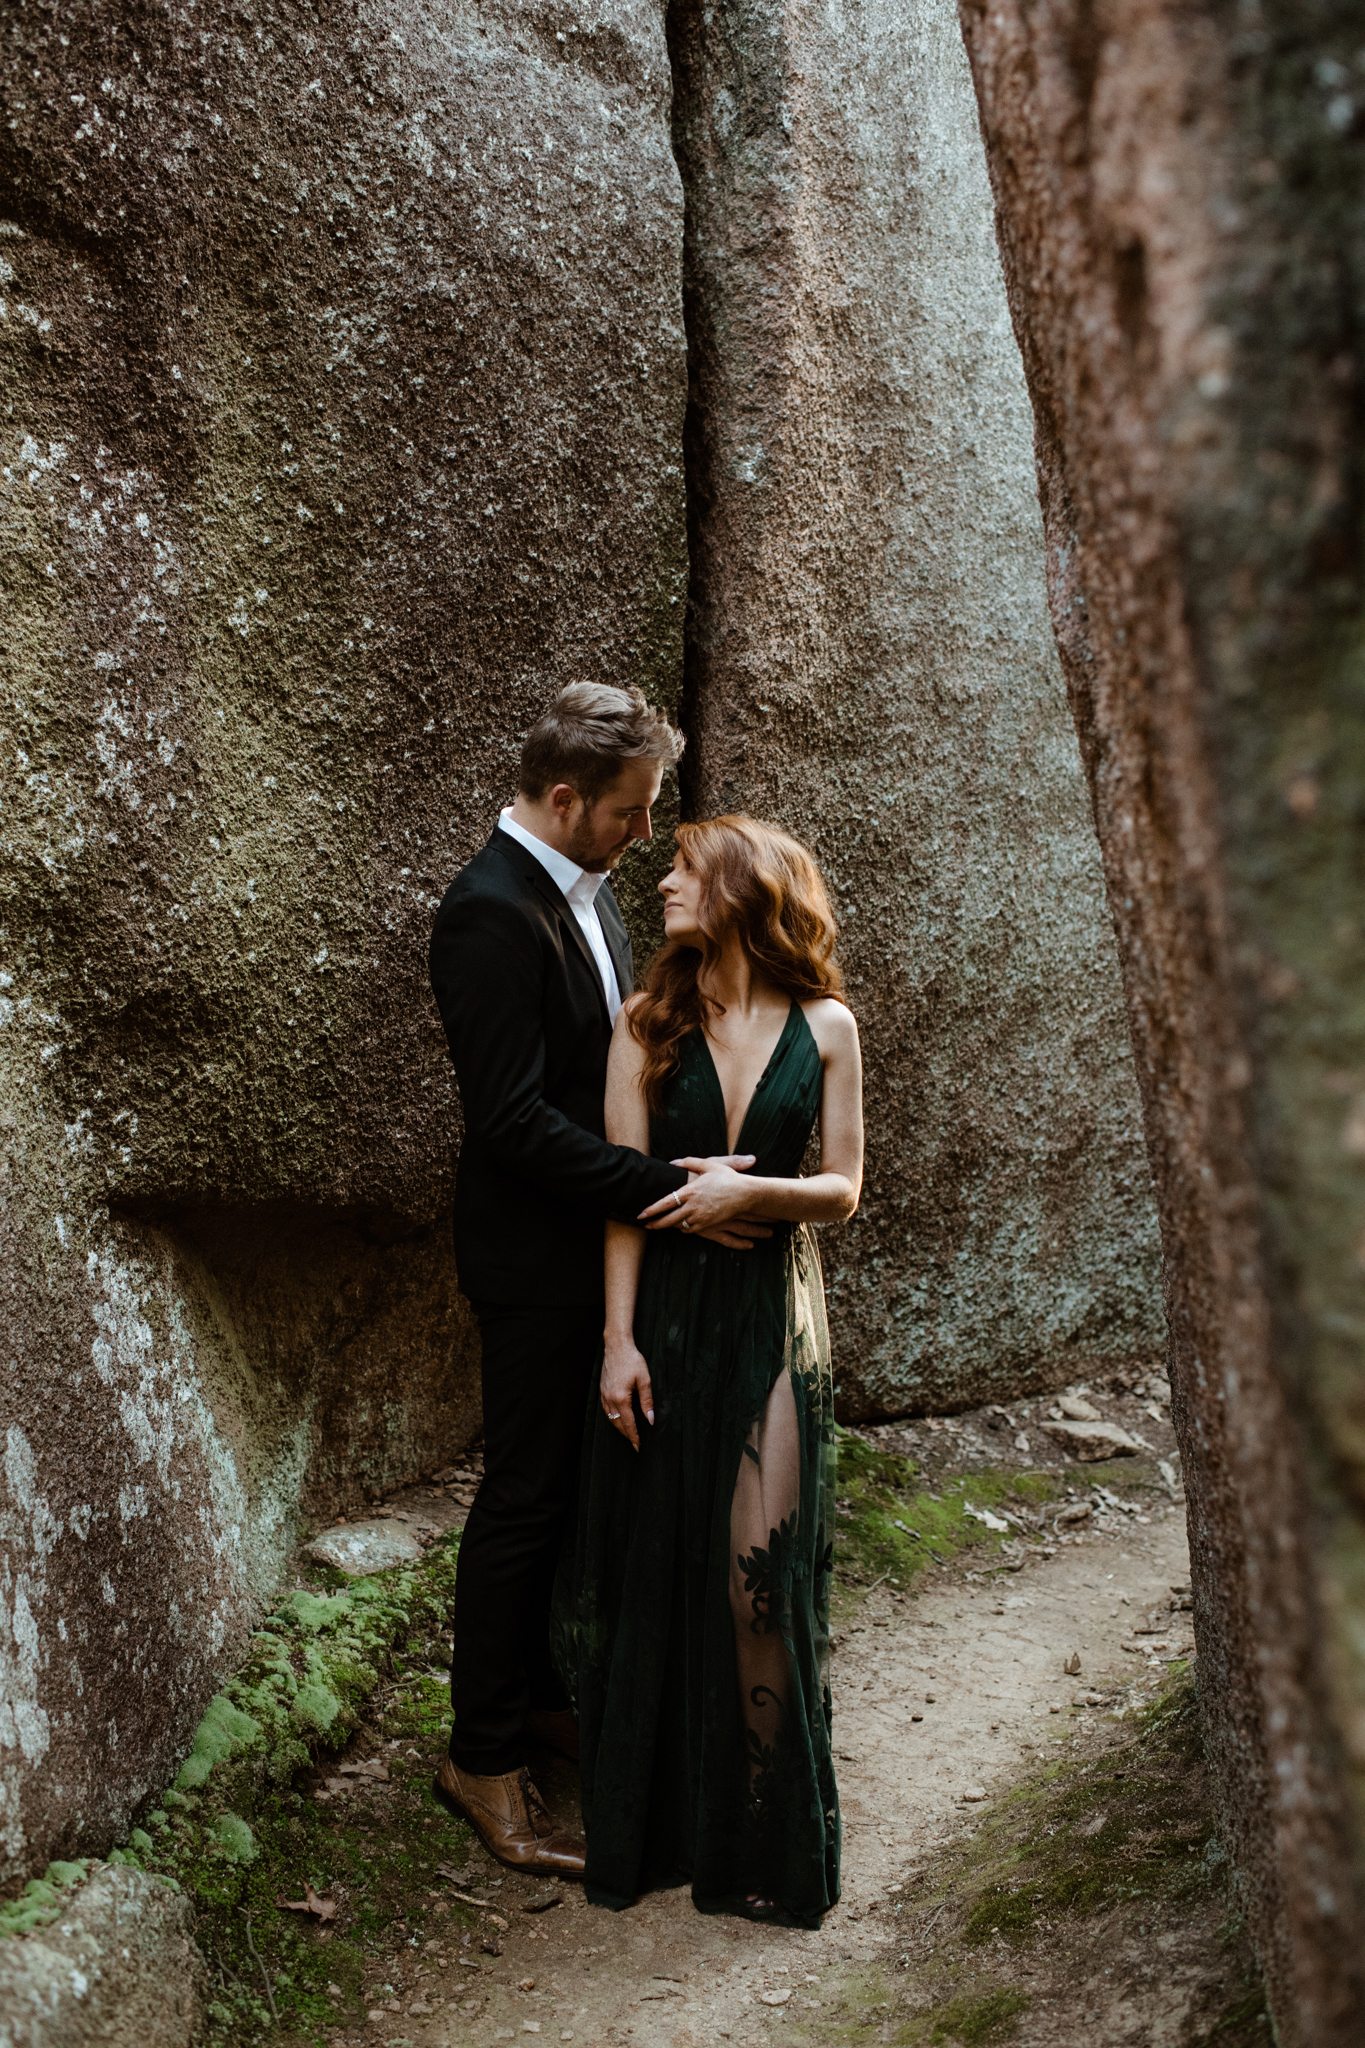 Zach and Rosalie - Missouri Wedding Photographer - Elephant rocks state park anniversary session -5221.jpg